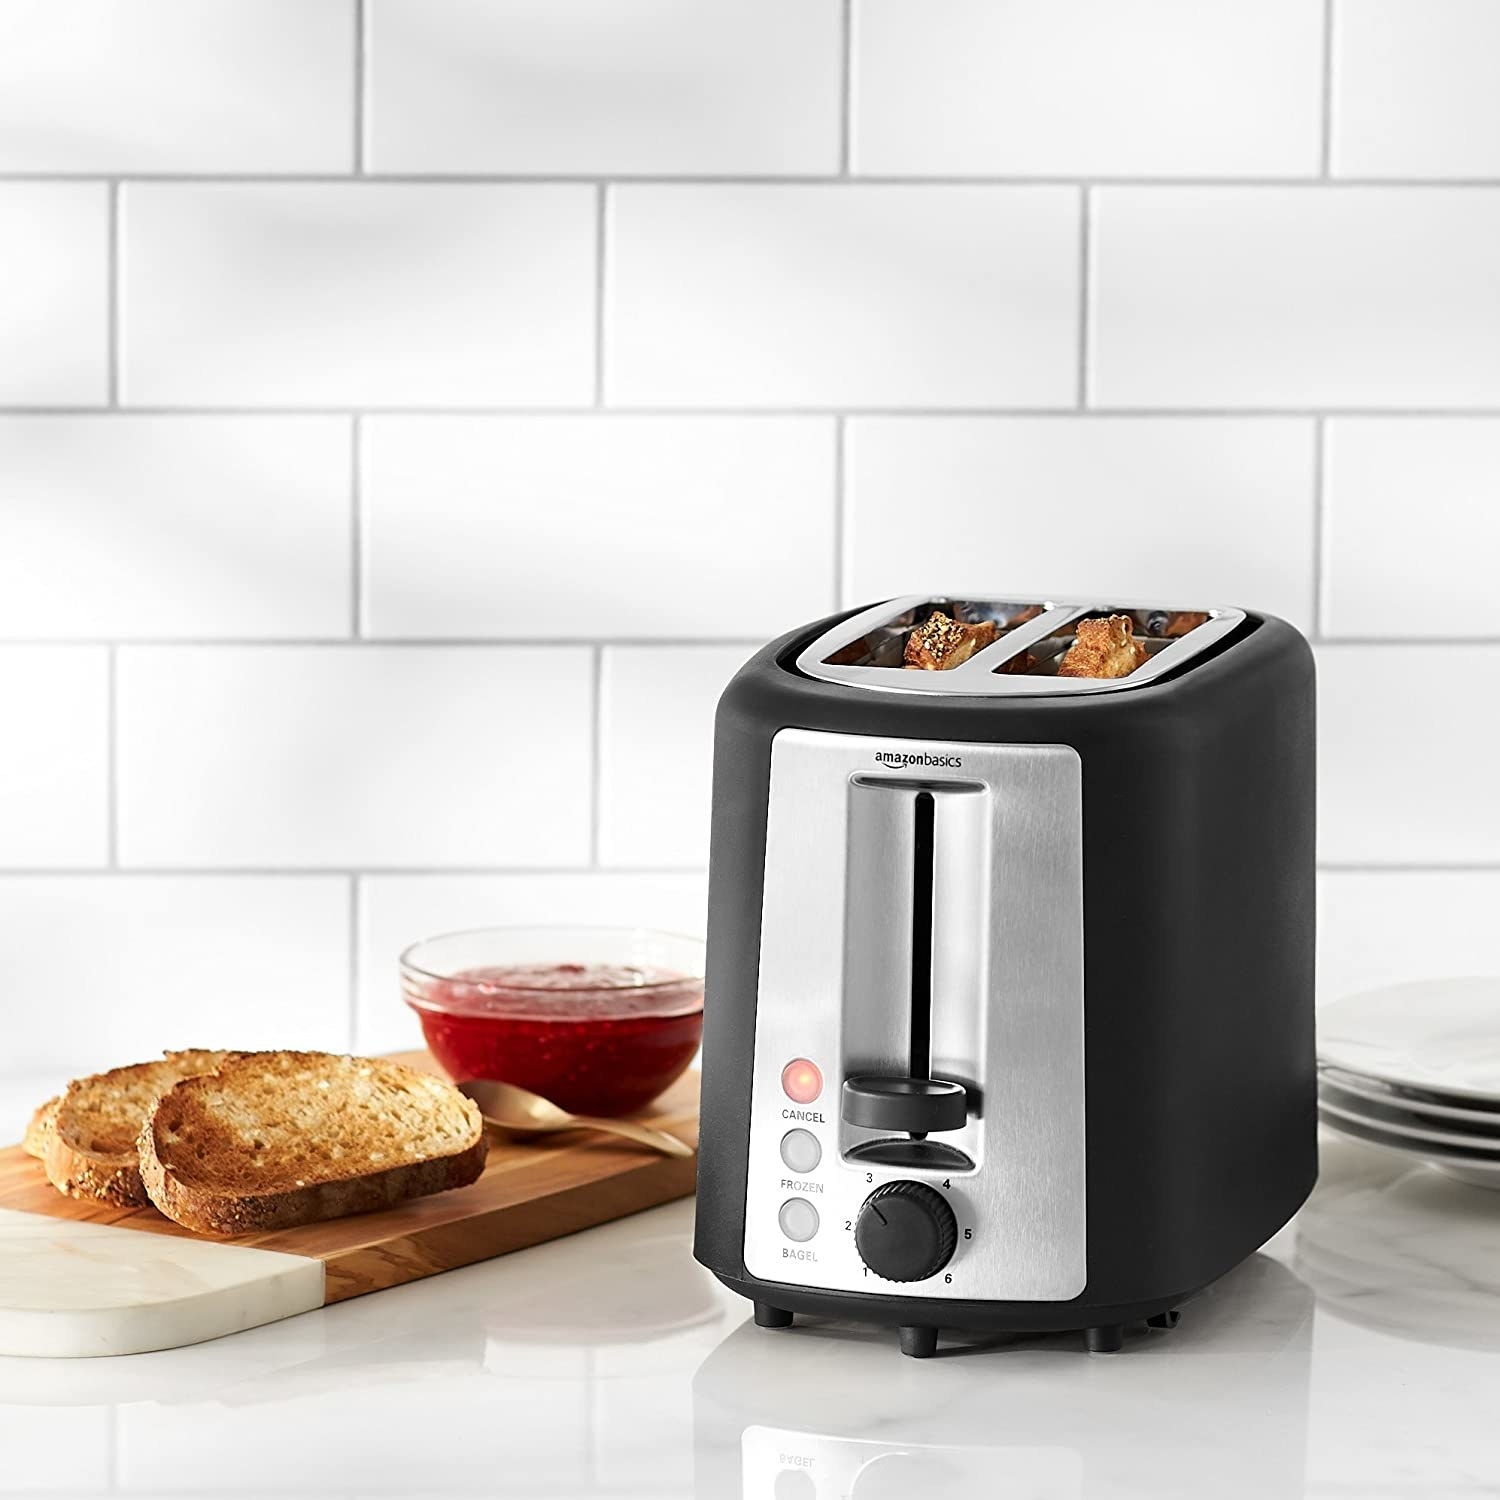 A toaster toasting bread on a kitchen counter